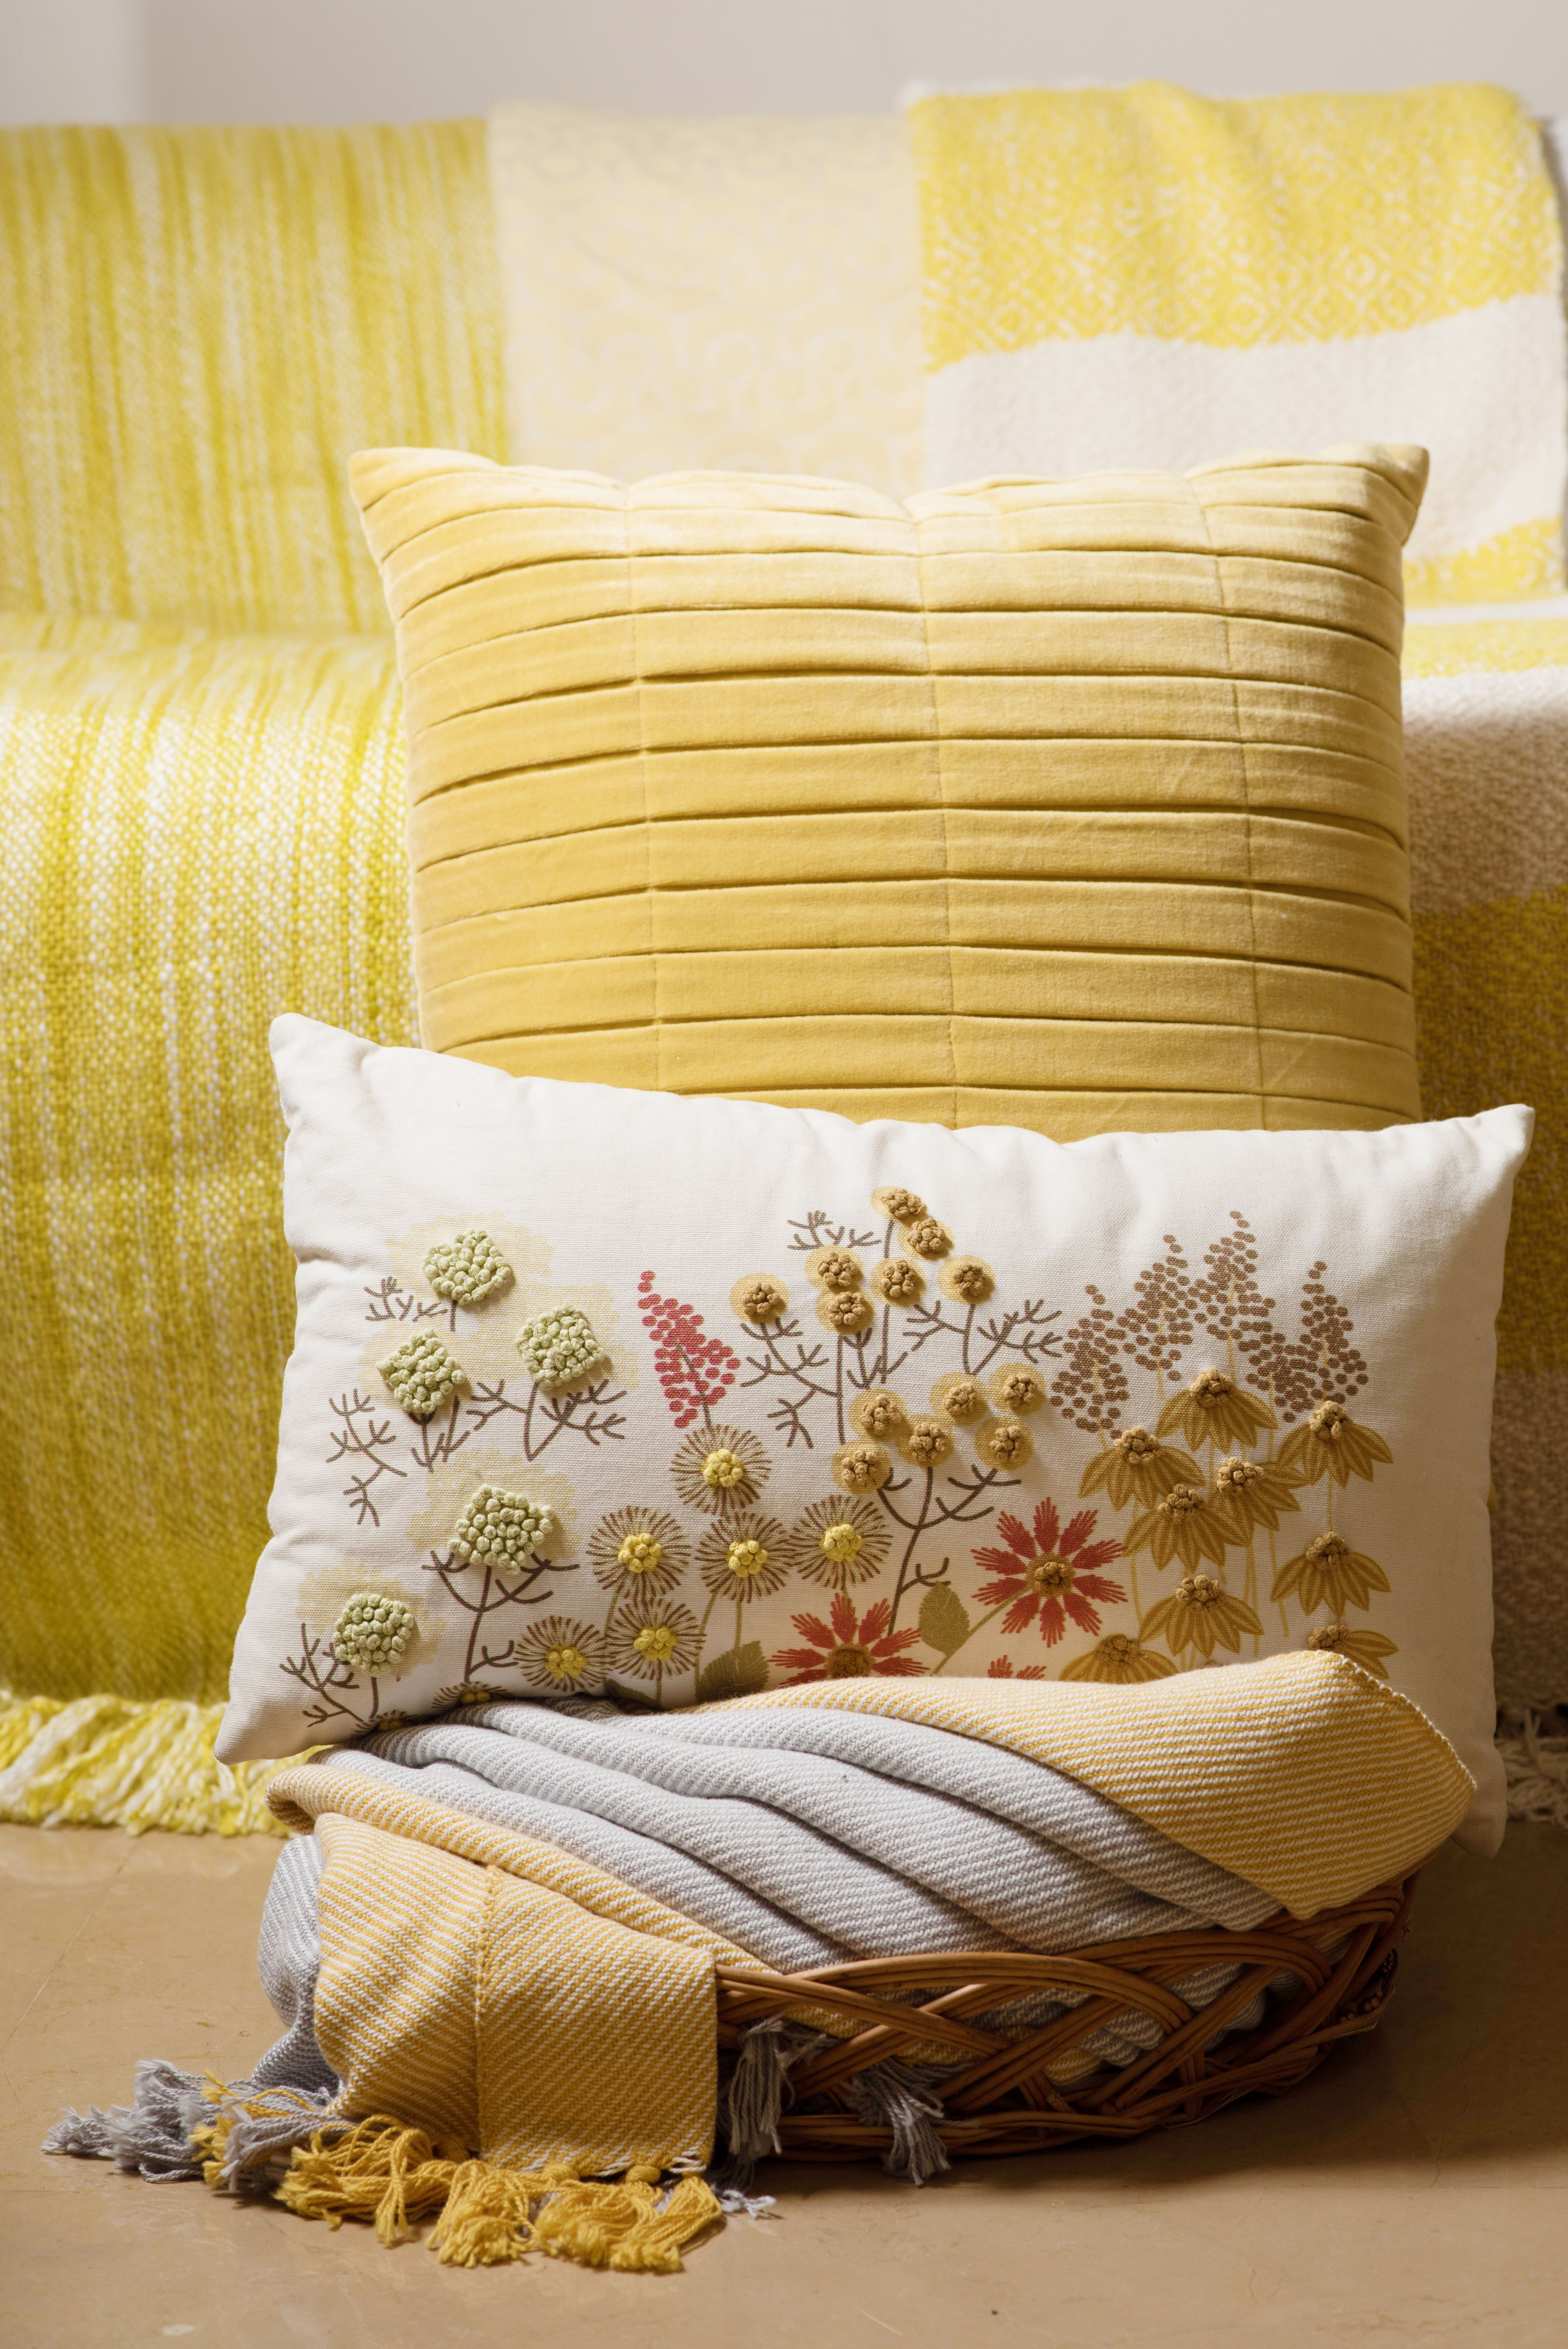 Light and airy assortment of cushions, perfect for this bright and sunny weather! #cushions #homedecor #homedecoration #homedecorinspo #designercushions